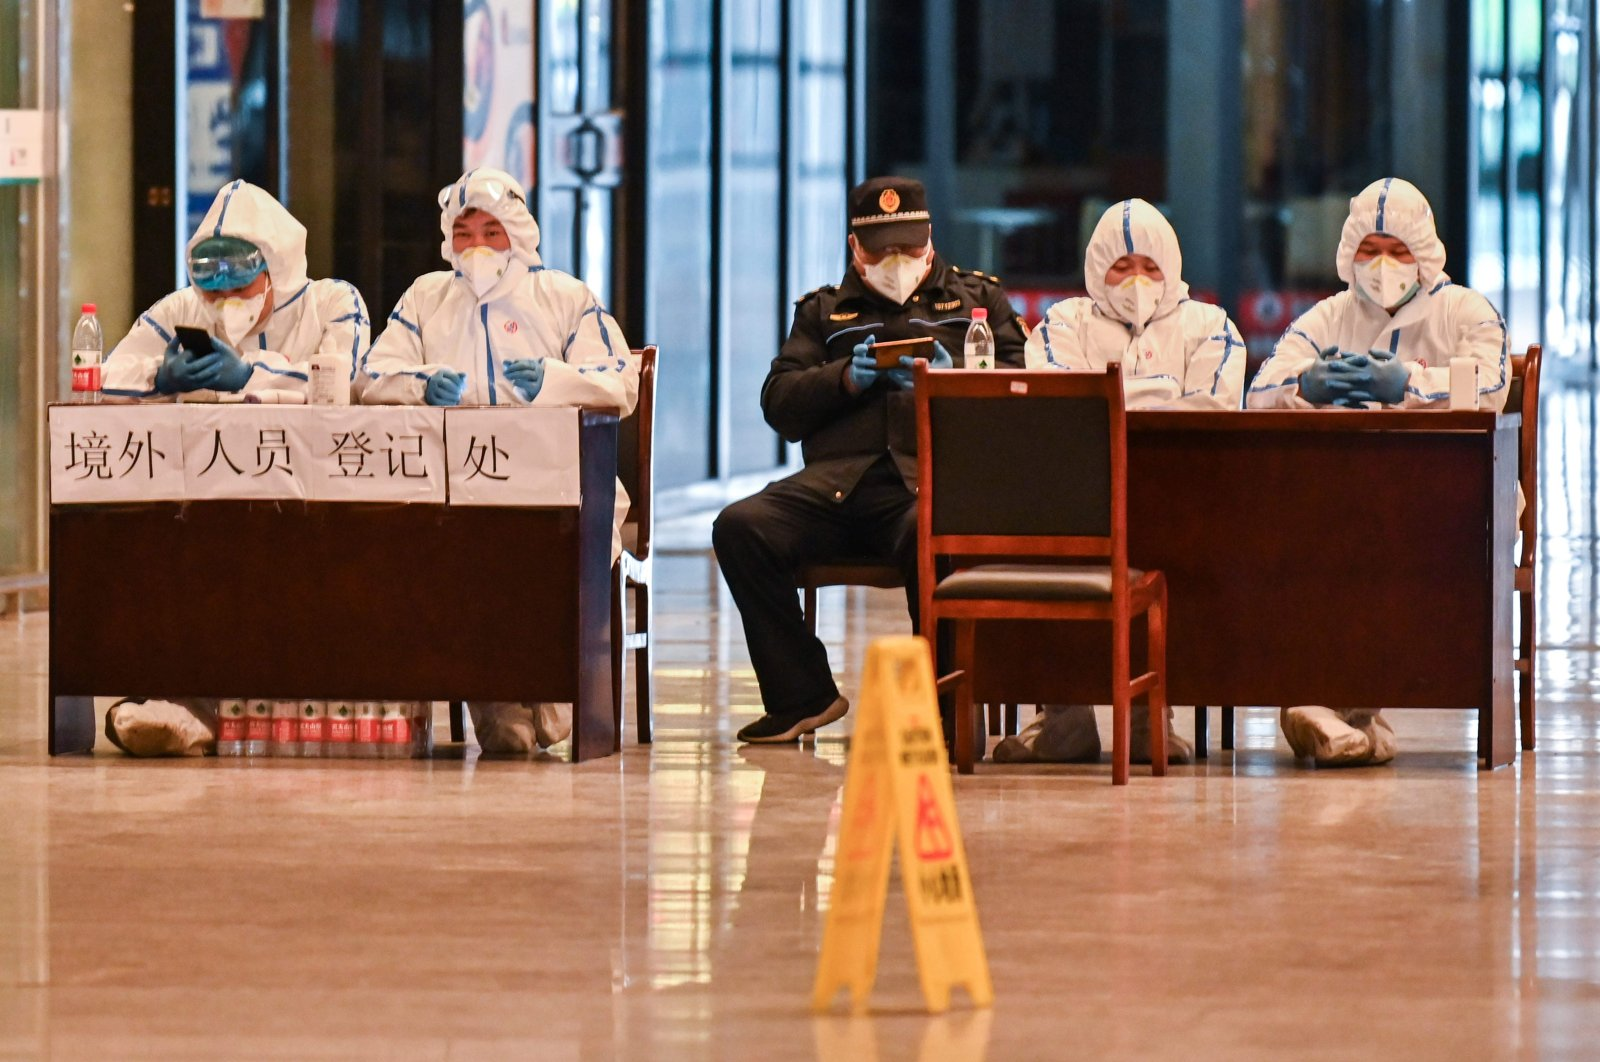 Workers in protective gear wait for passengers arriving at the railway station, Wuhan, March 28, 2020. (AFP Photo)